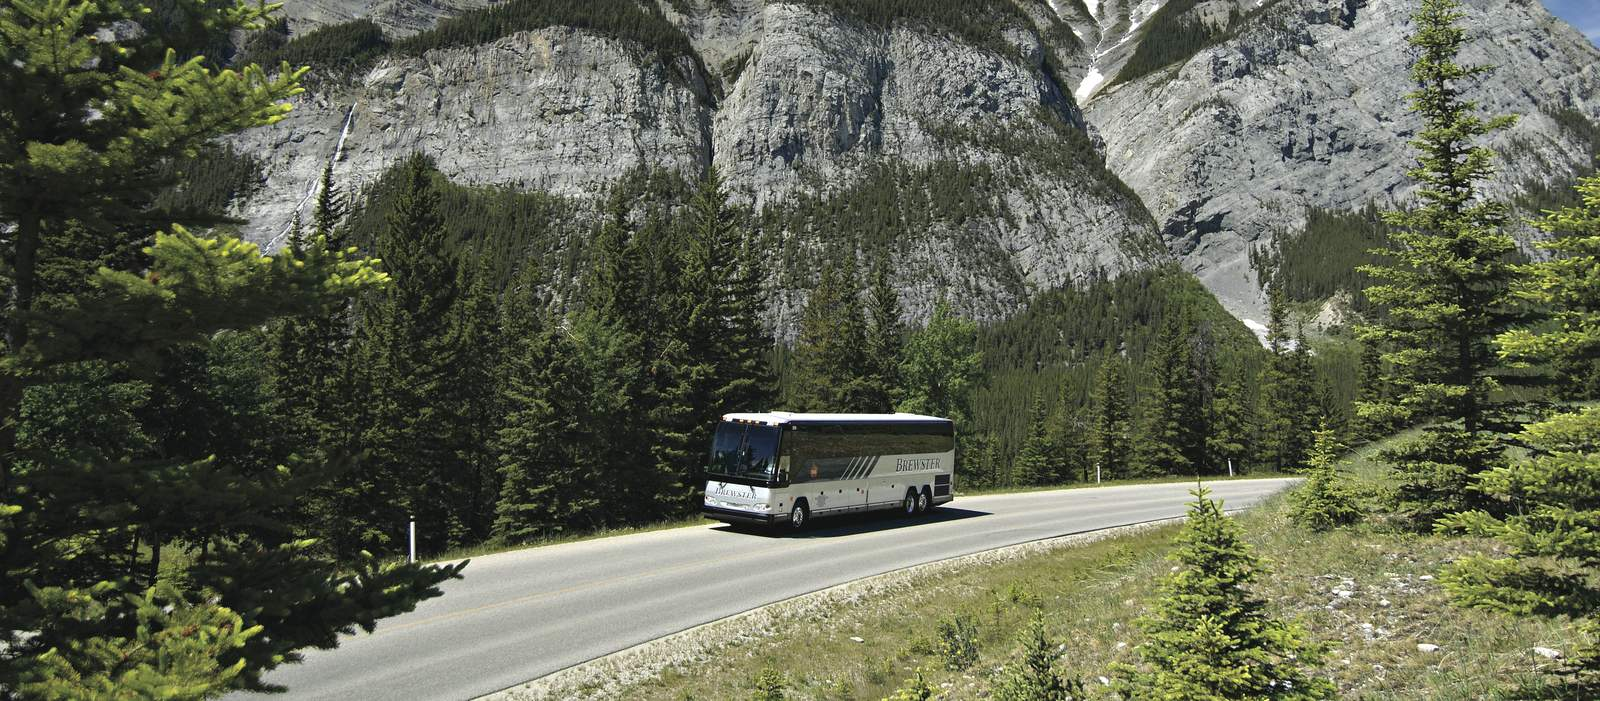 Brewster Motorcoach in the Canadian Rockies near the town of Banff.